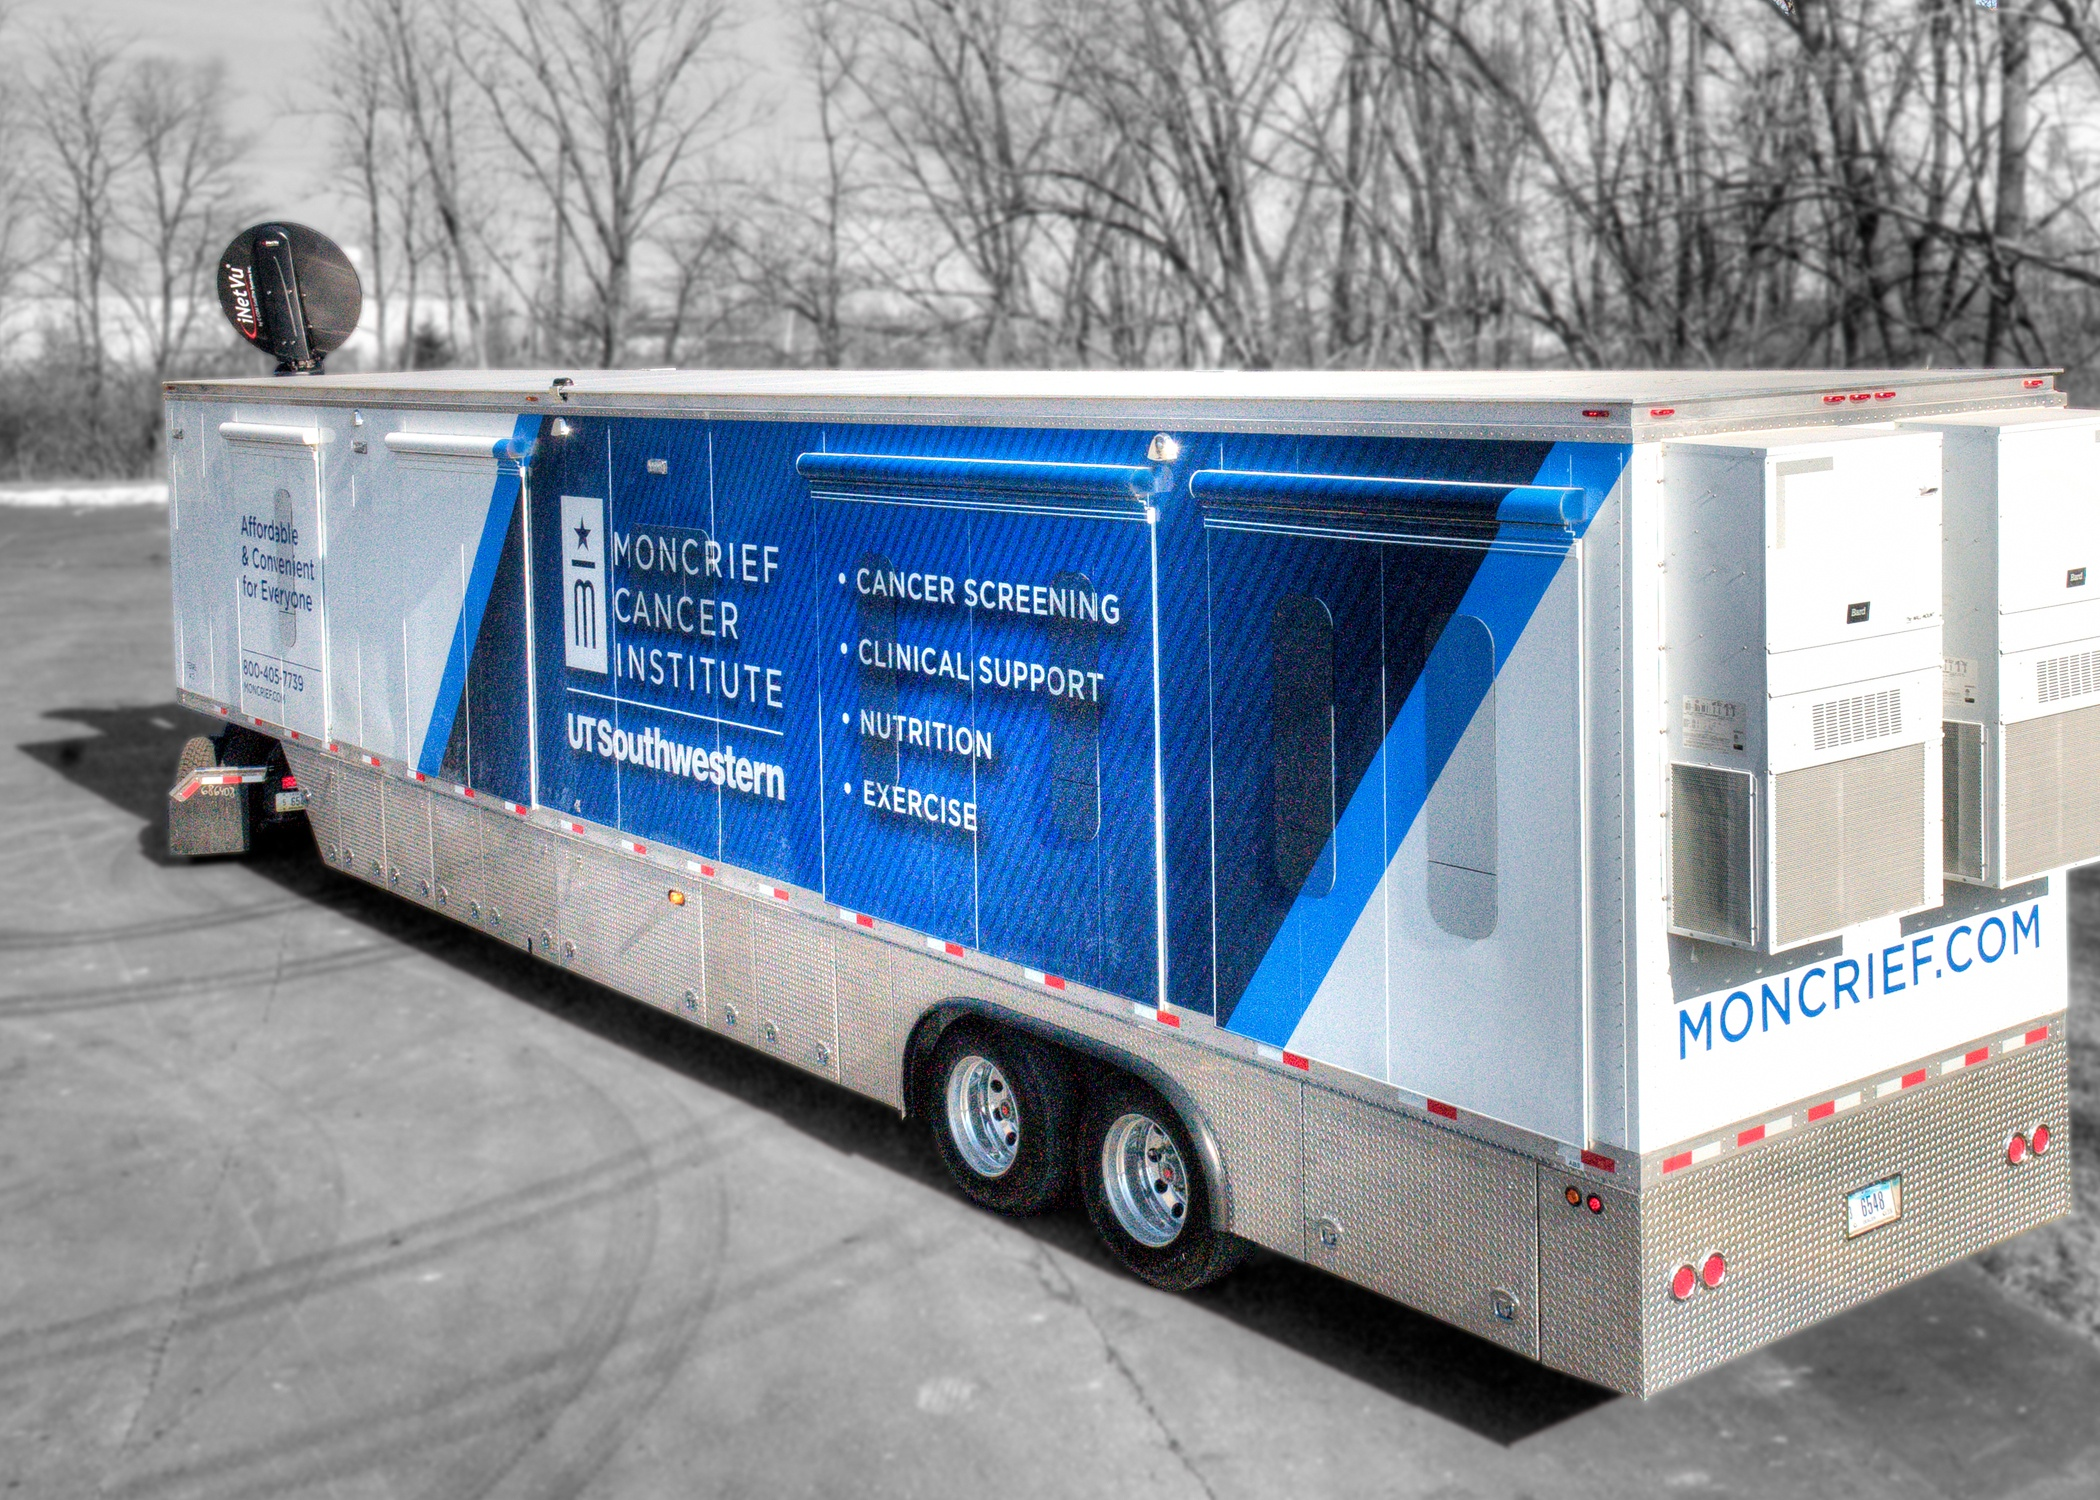 Moncrier Cancer Institute mobile mammogram unit